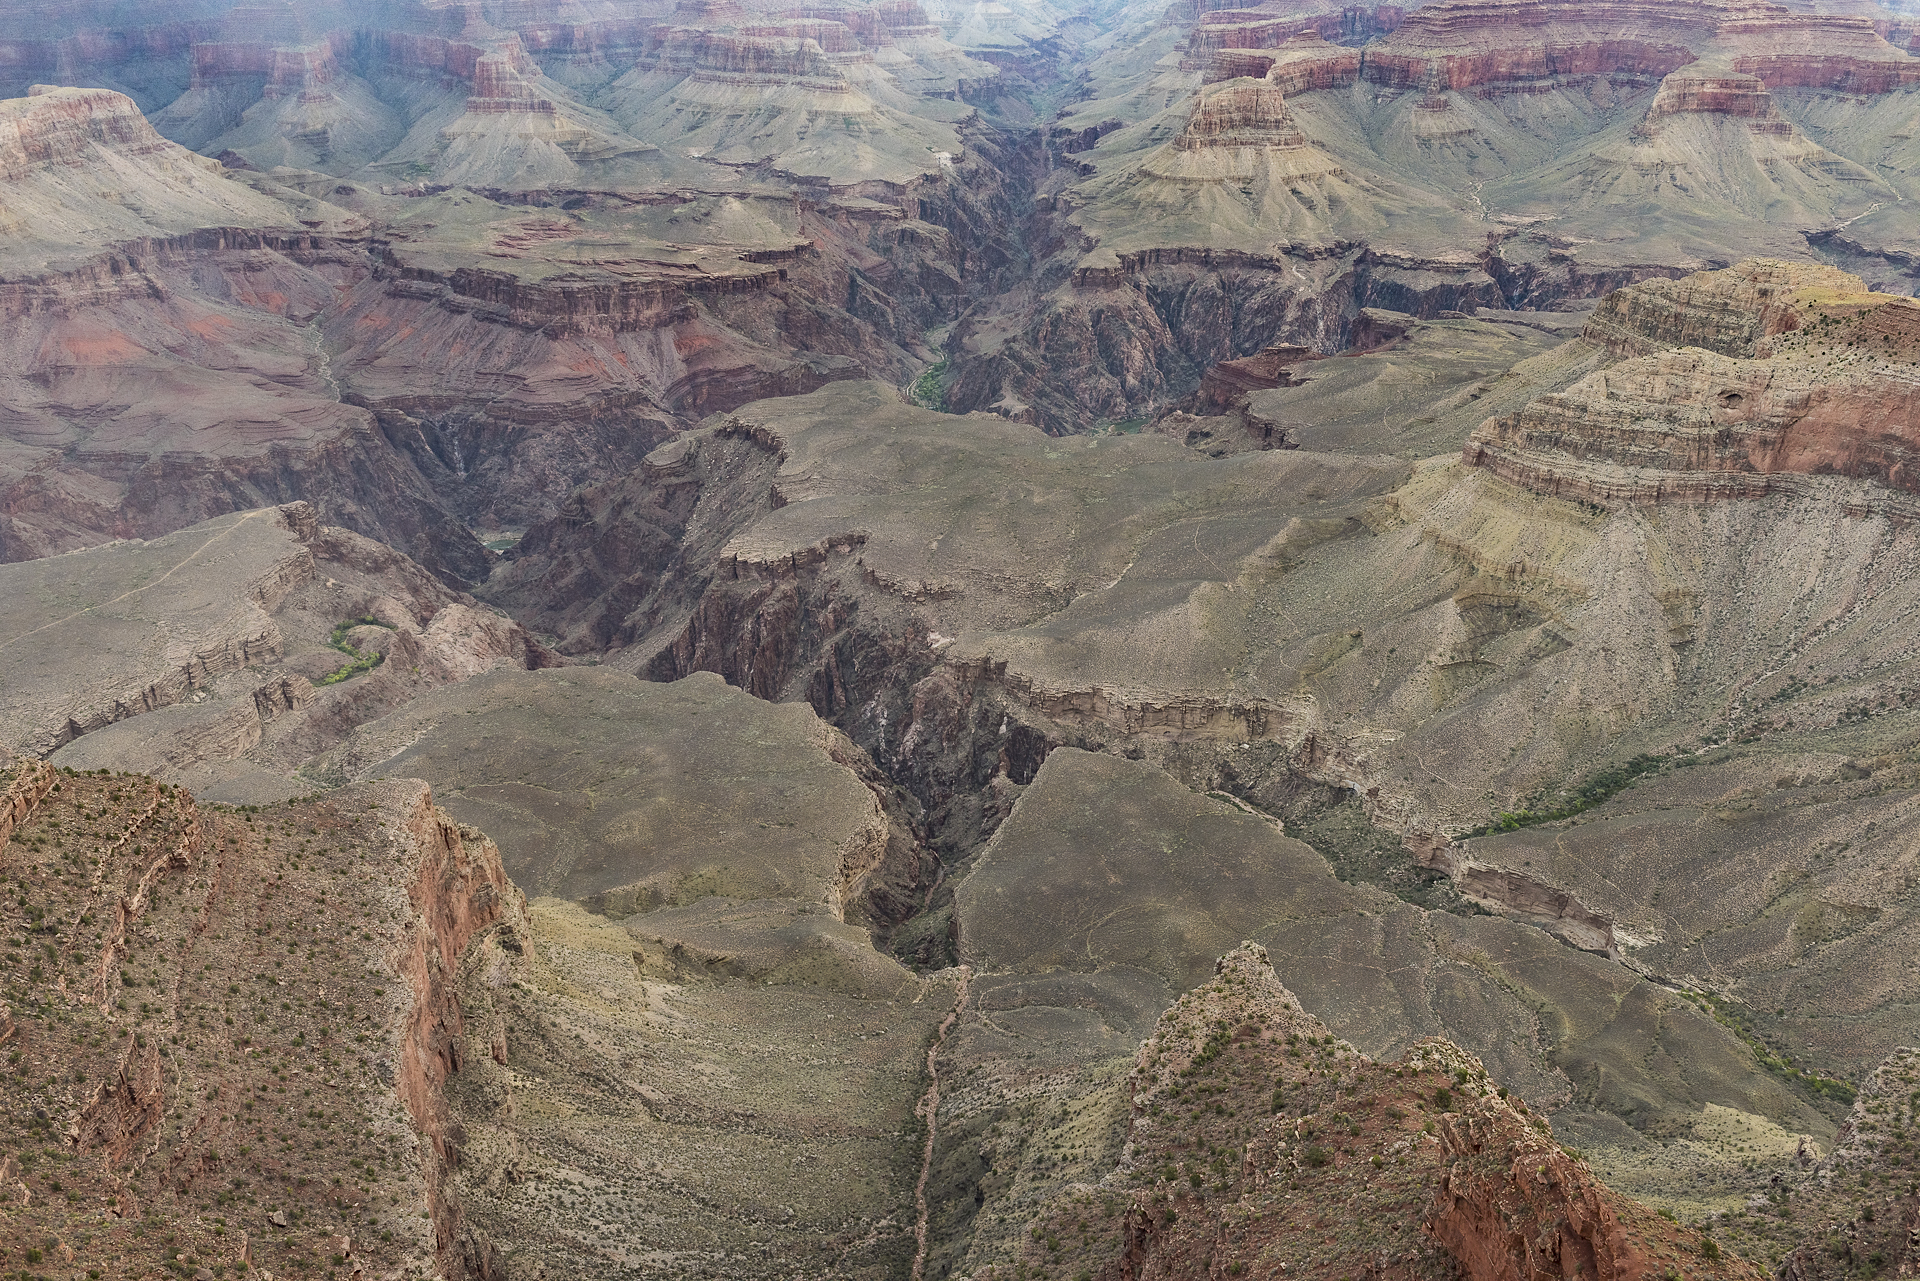 Eons of relentless erosion: Yavapai Pt., Grand Canyon NP, AZ